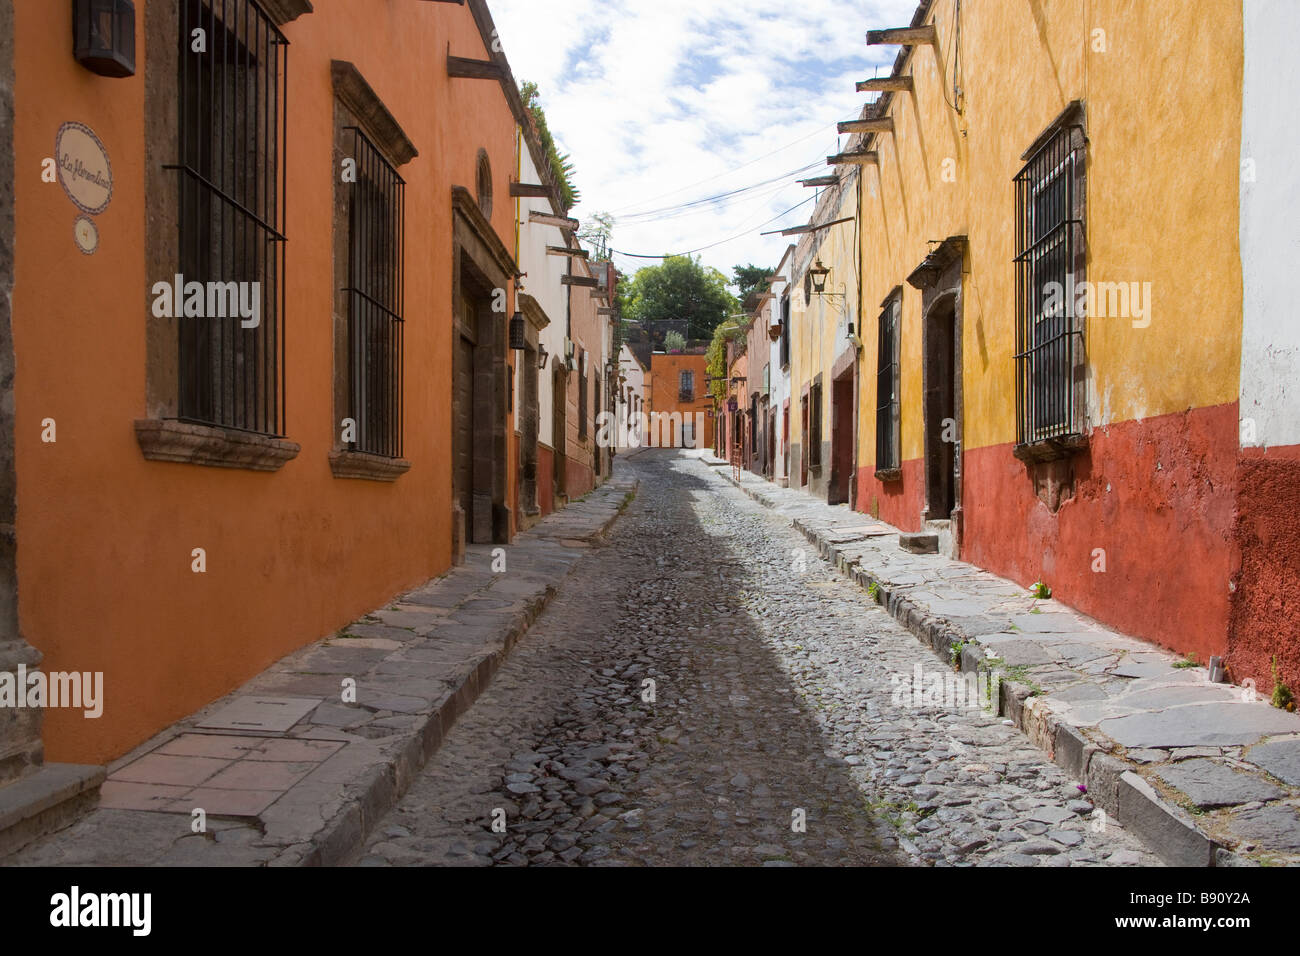 Colorful Cobblestoned  Street in San Miguel de Allende, Mexico - Stock Image